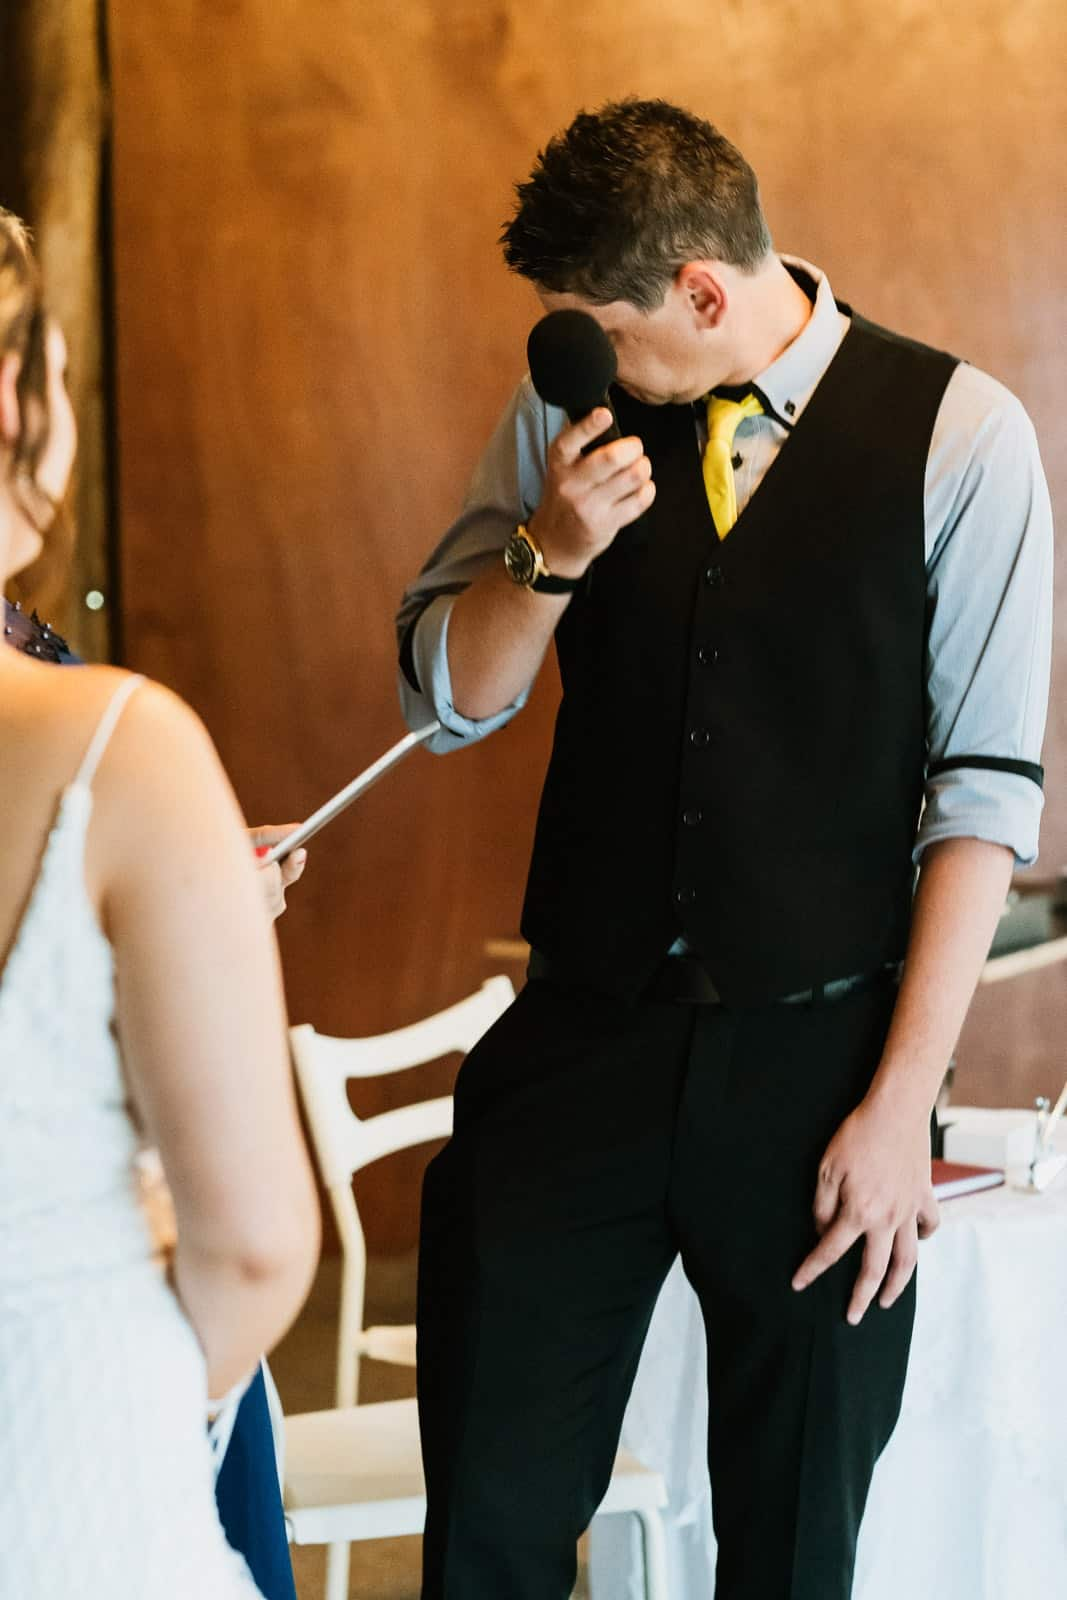 Groom wipes away tear